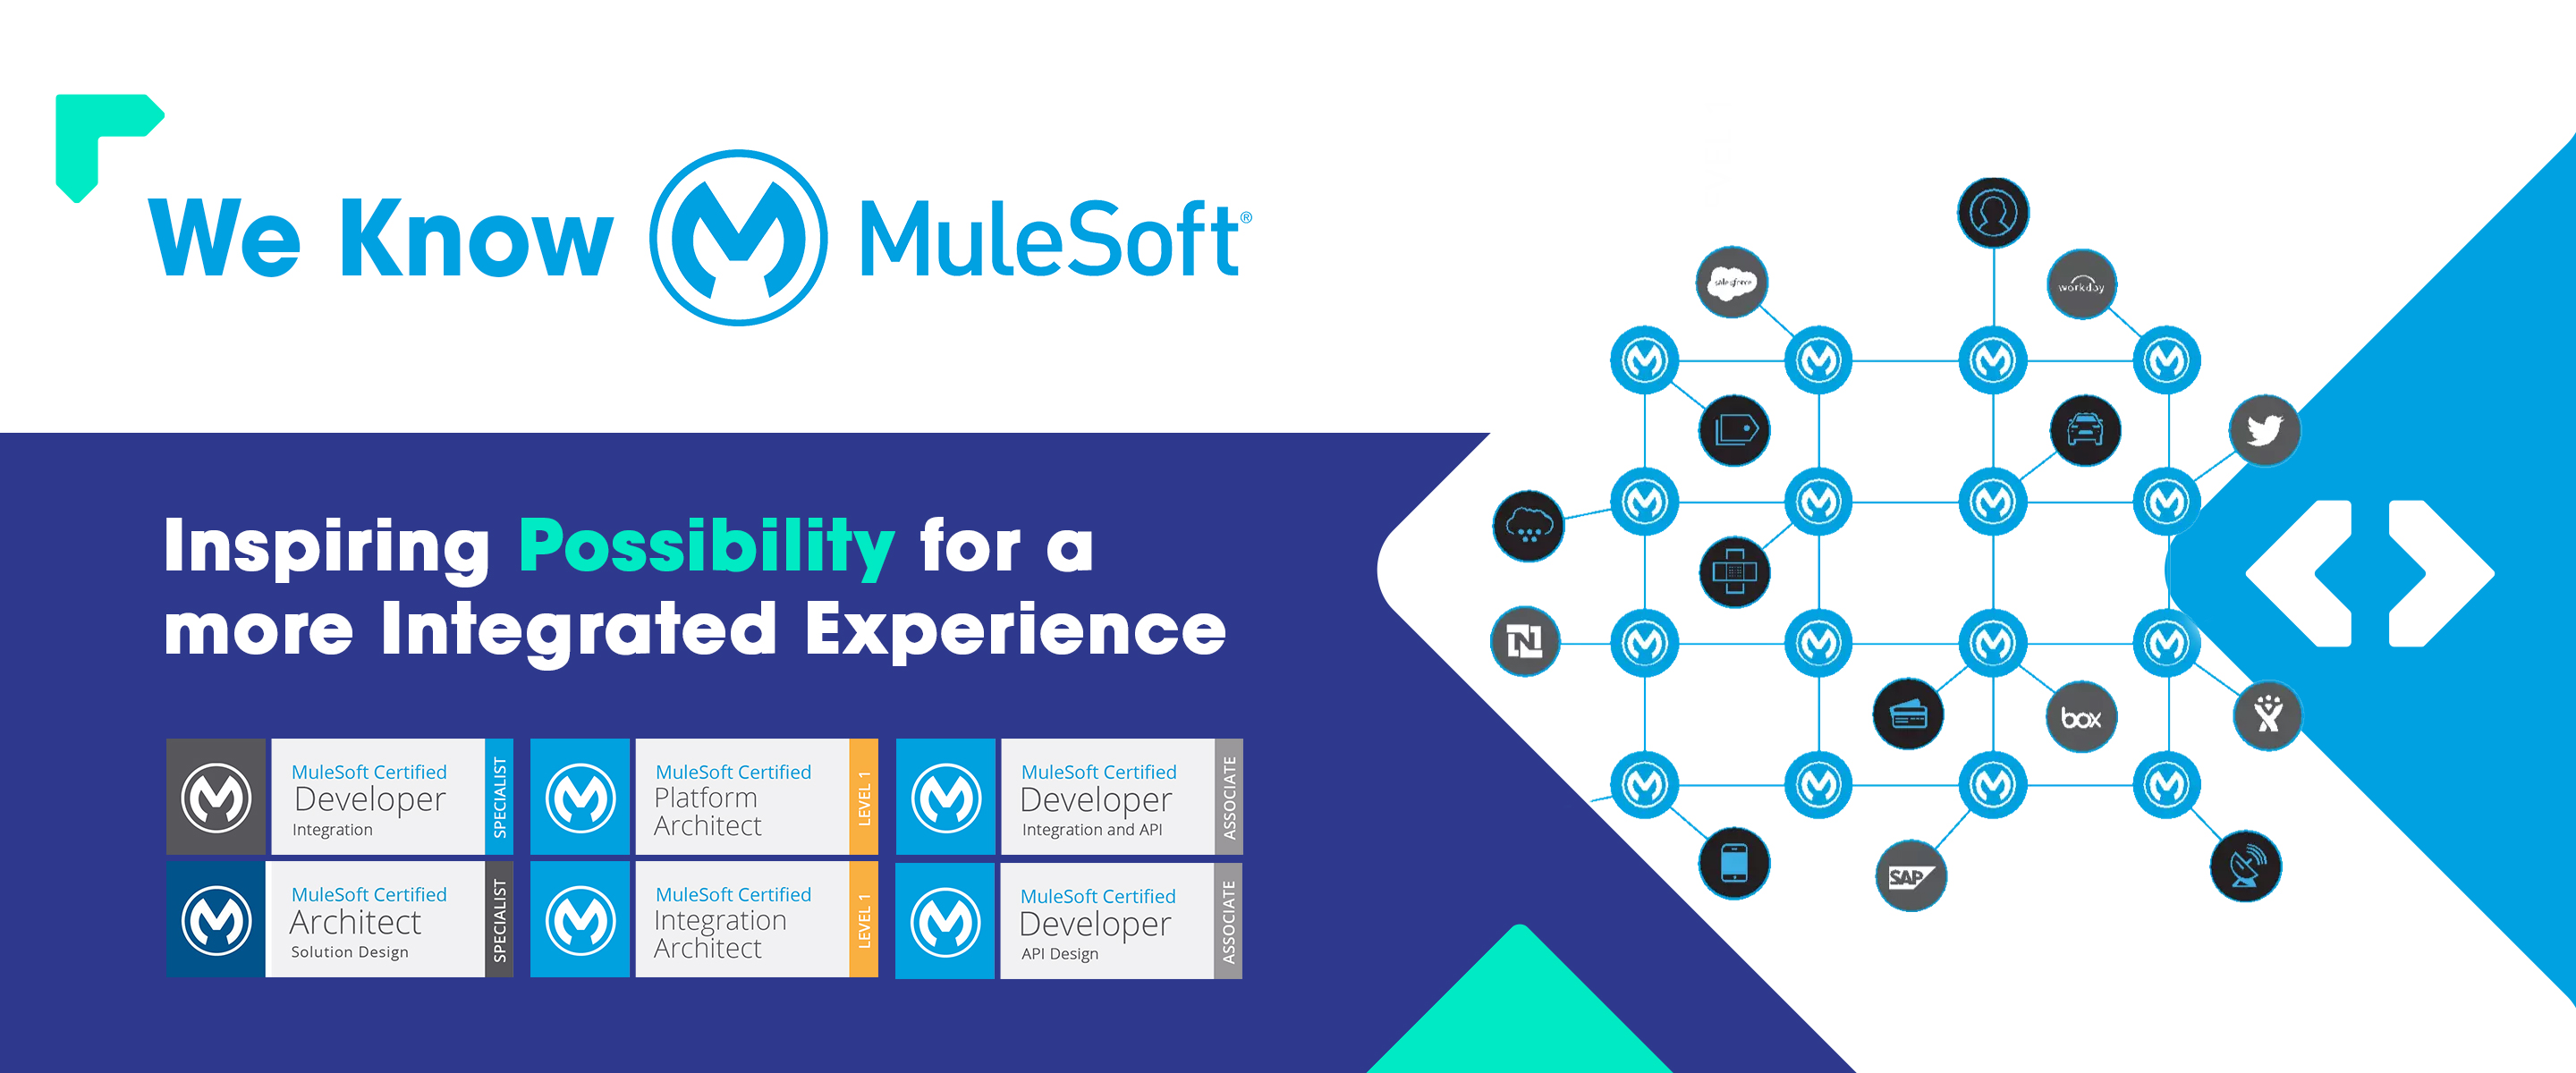 mulesoft integration, mulesoft integrators, mulesoft integrate